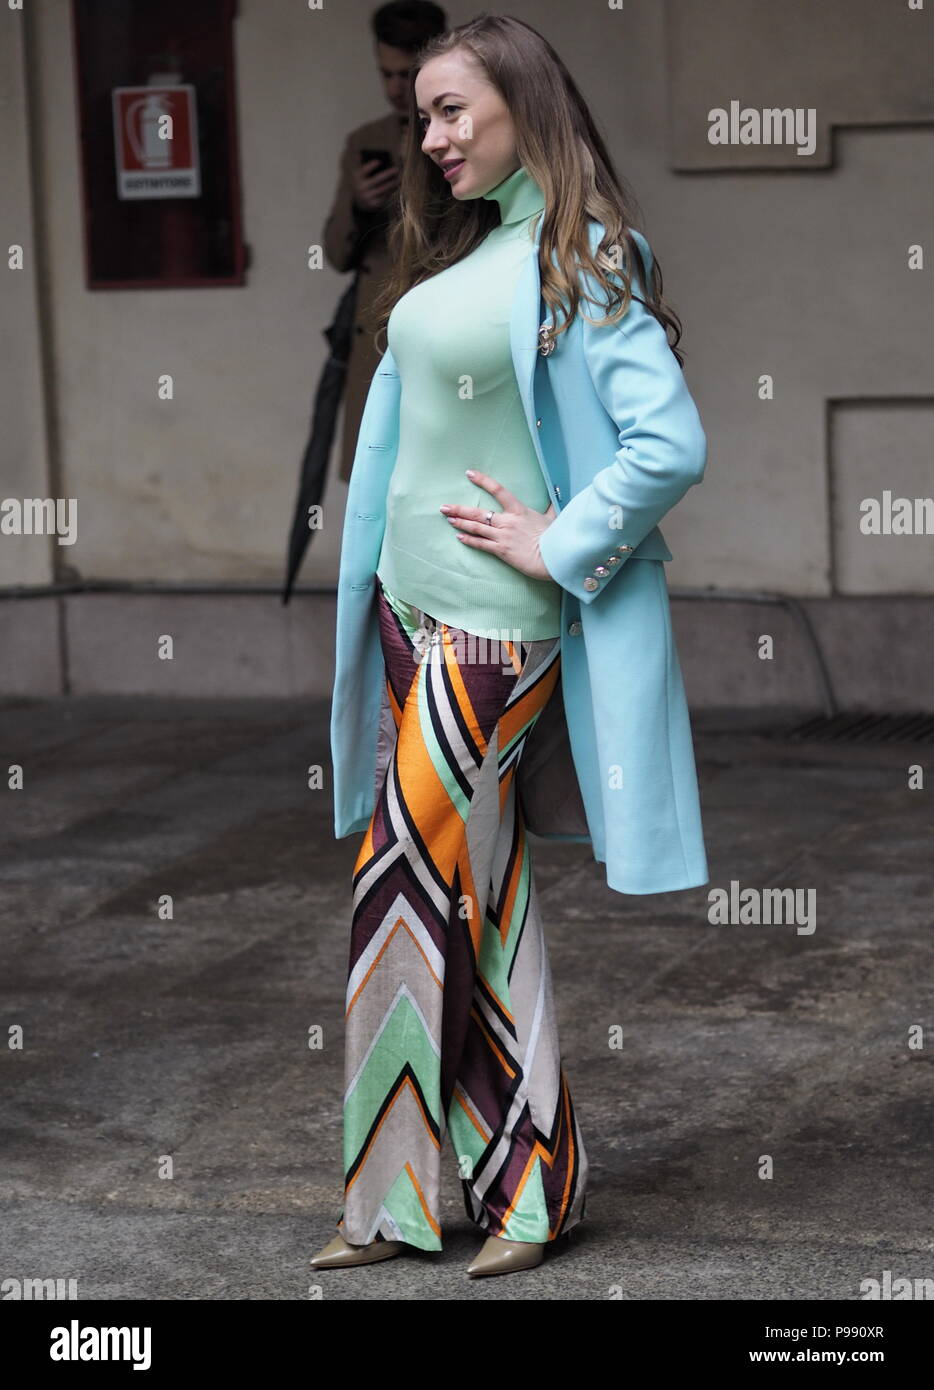 MILAN - FEBRUARY 22, 2018: Models and fashion blogger in 'Corso Magenta' 24 after and before EMILIO PUCCI fashion show - Stock Image